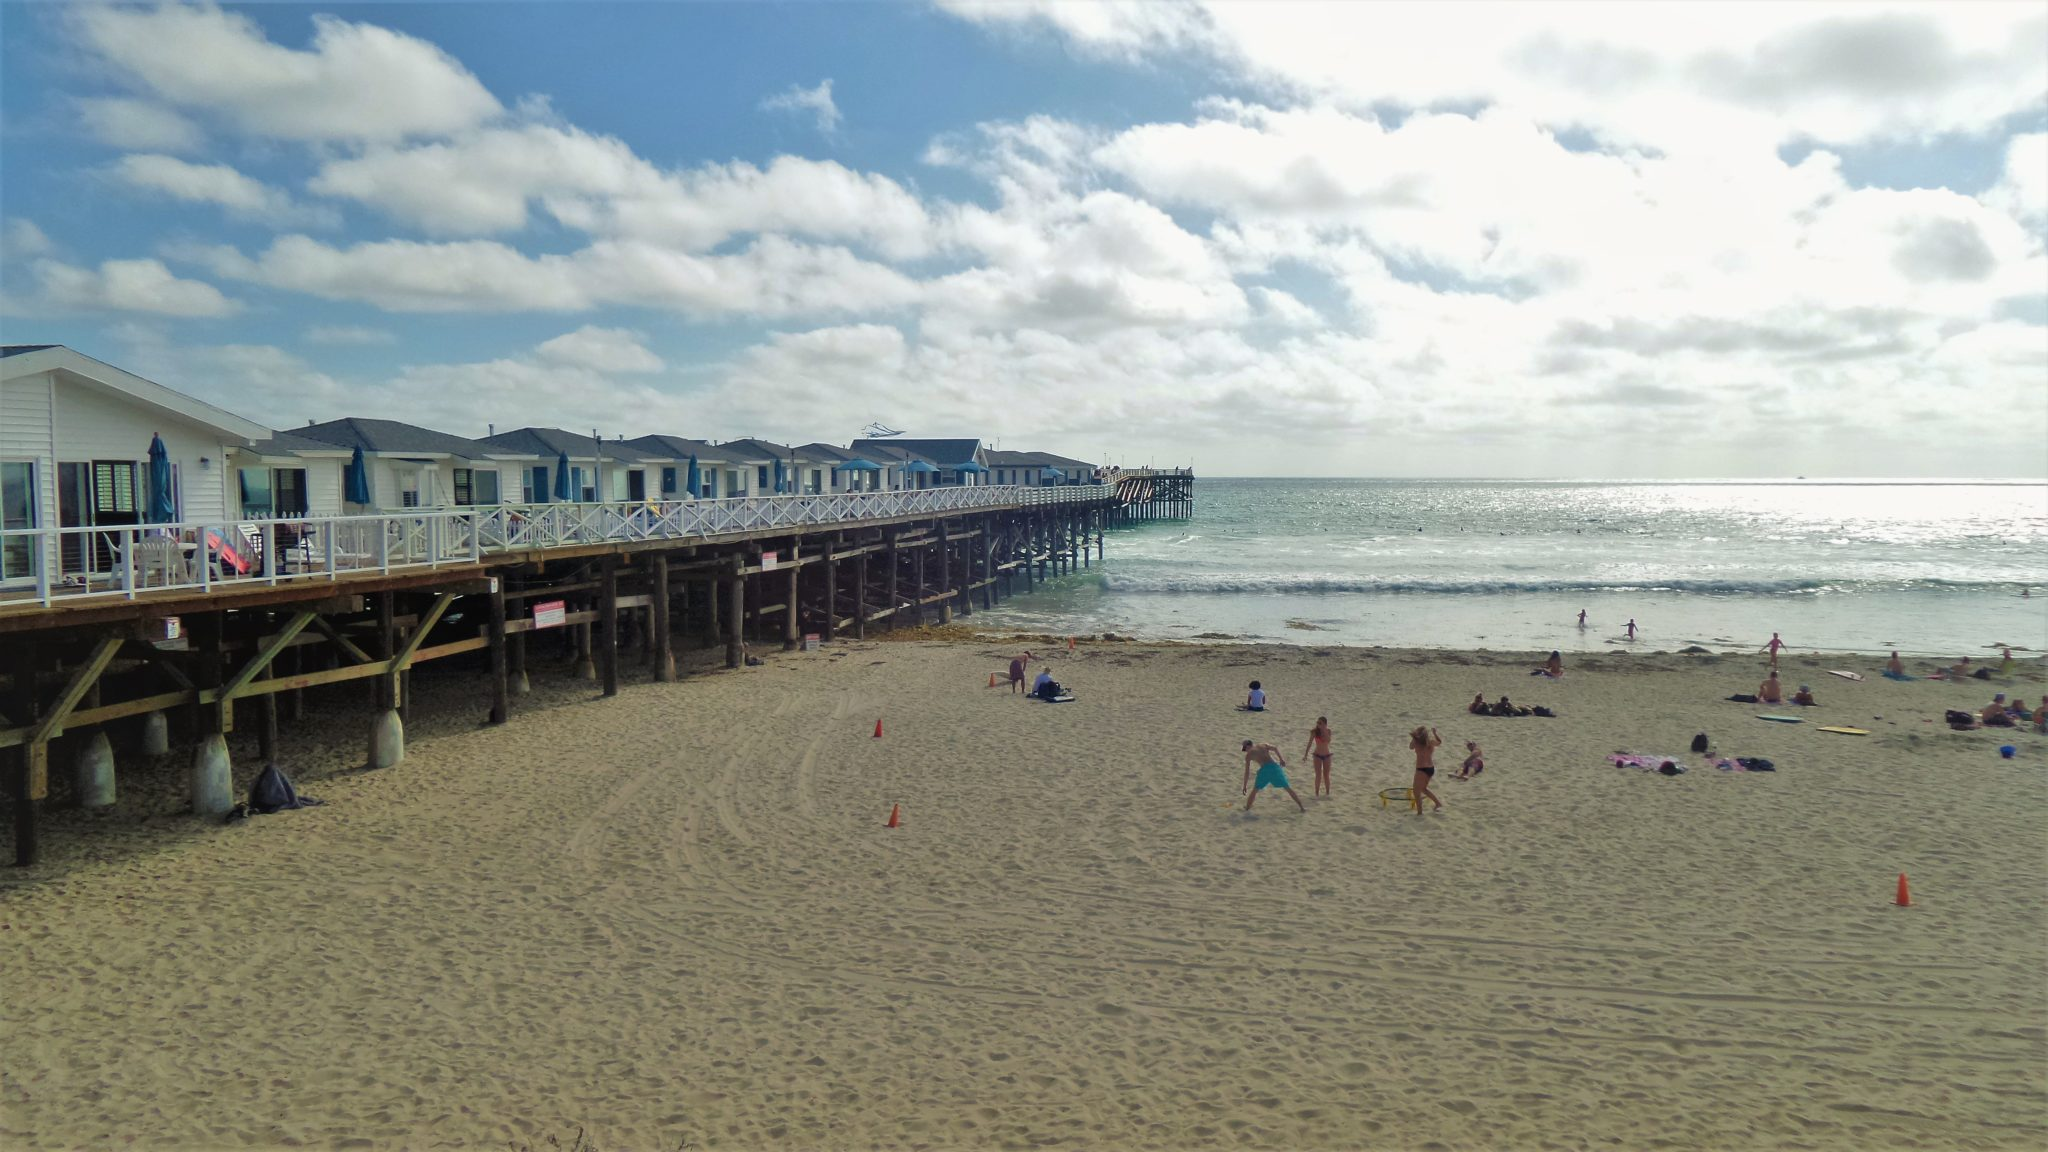 Pier at Pacific Beach, things to do in San Diego, California